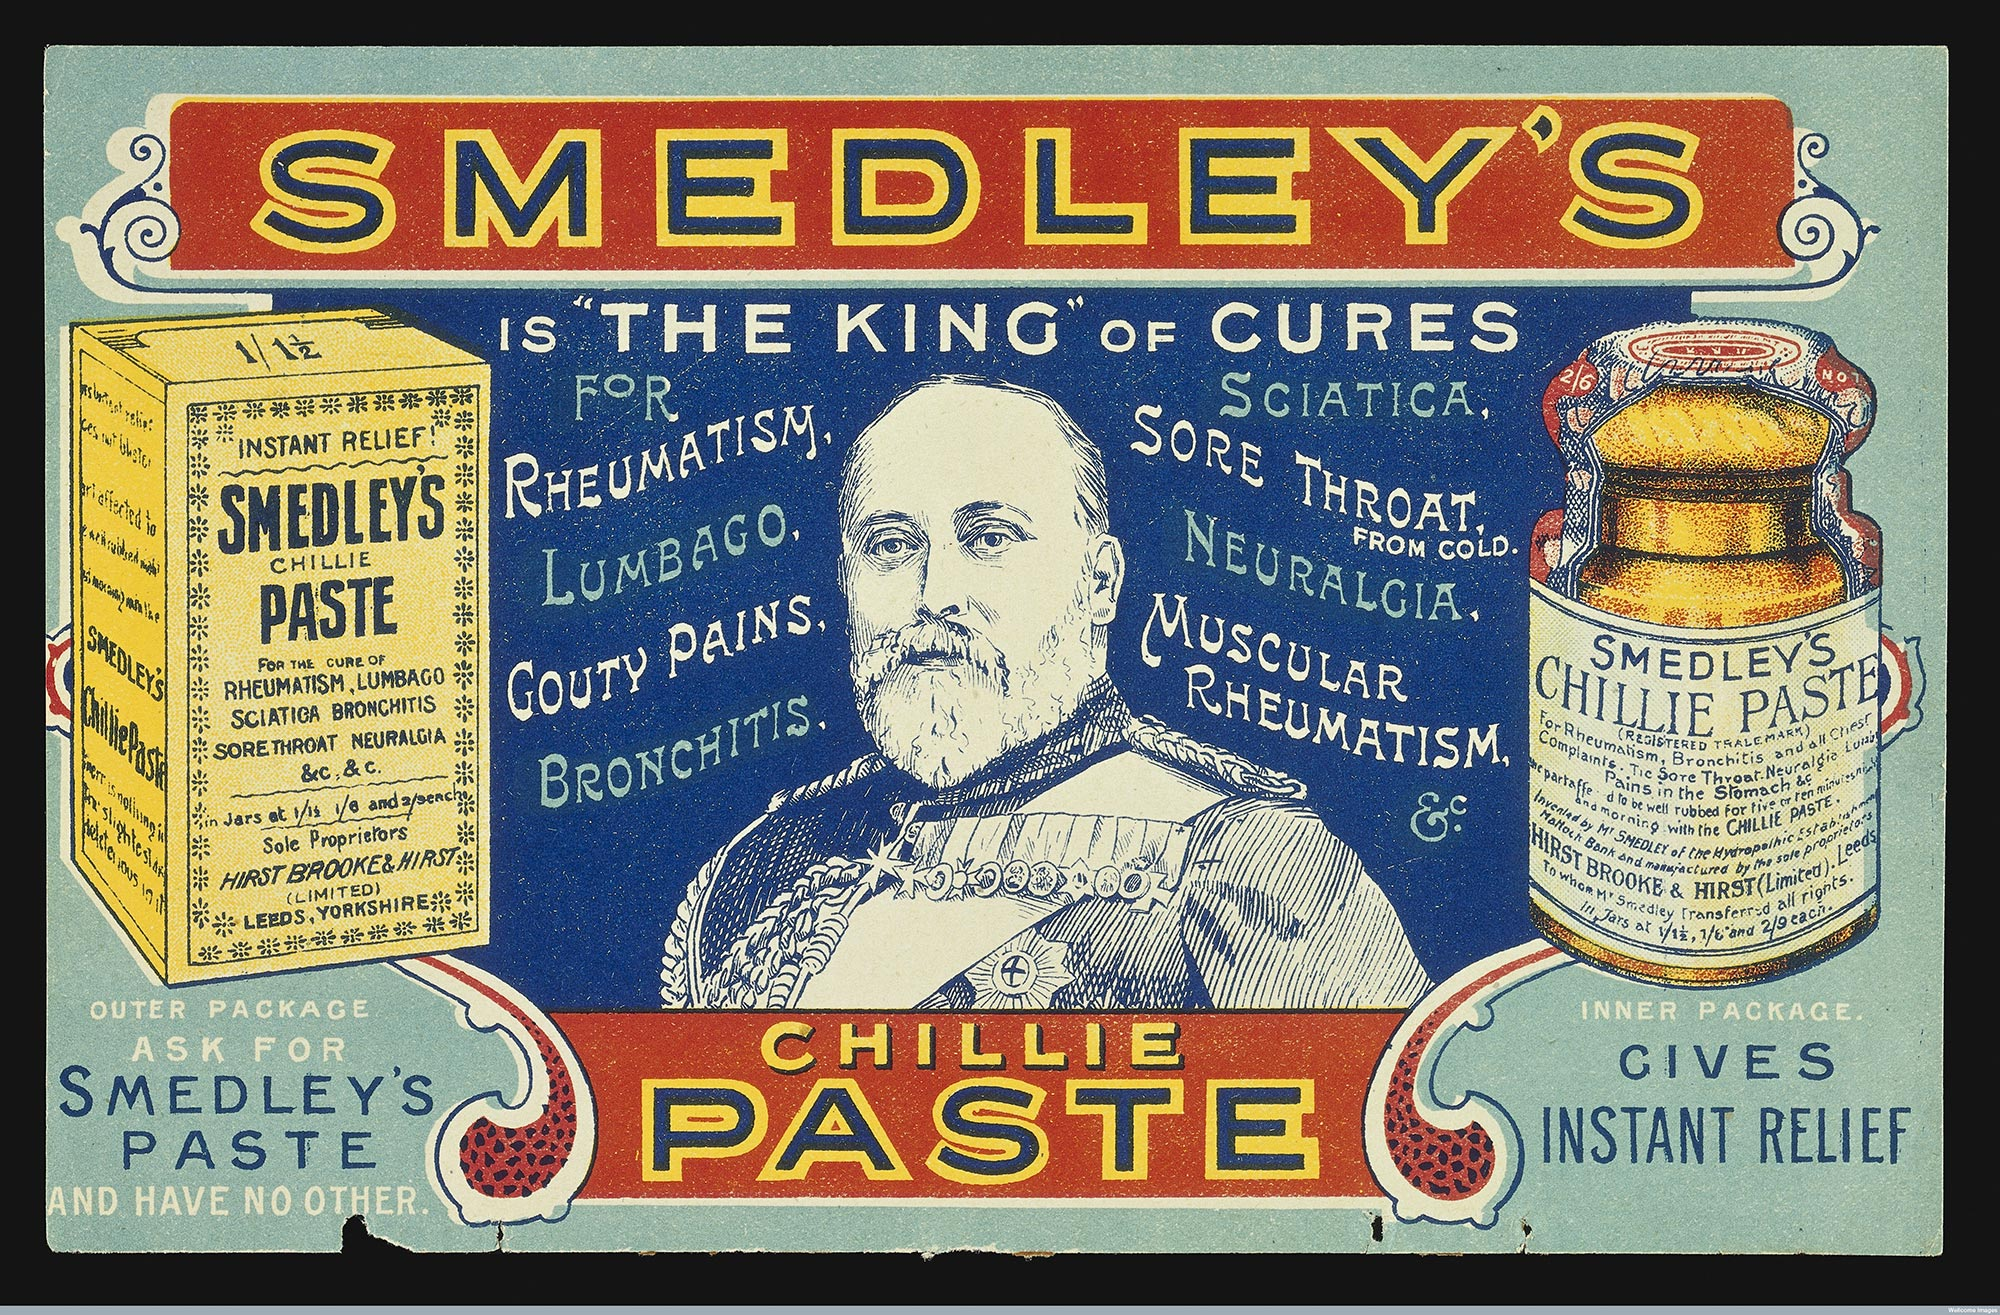 Advertisement for Smedley's chillie paste, 'the king' of cure